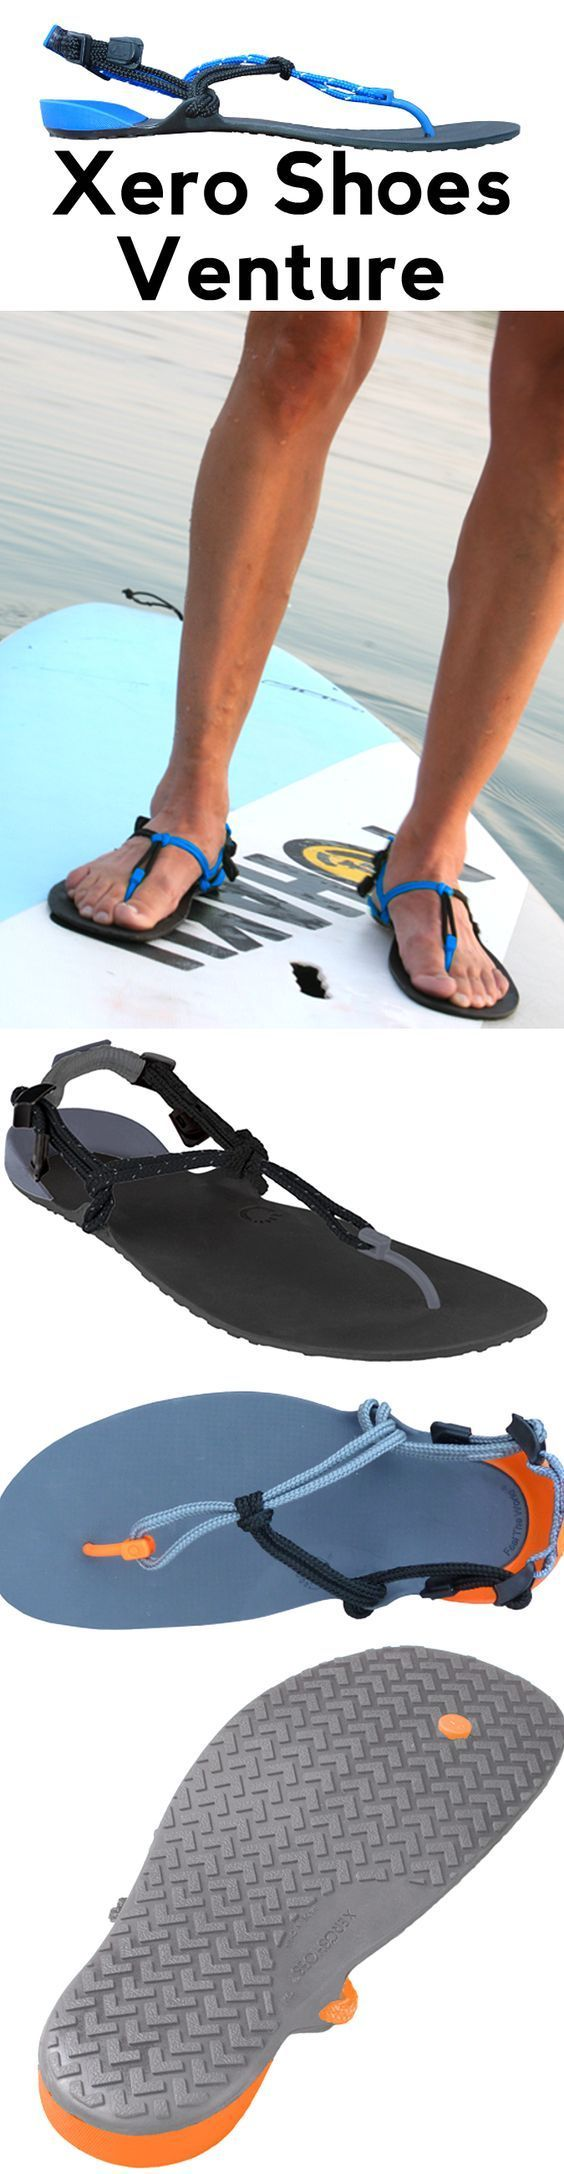 Review of the Venture by Xero Shoes - A barefoot running sandal.